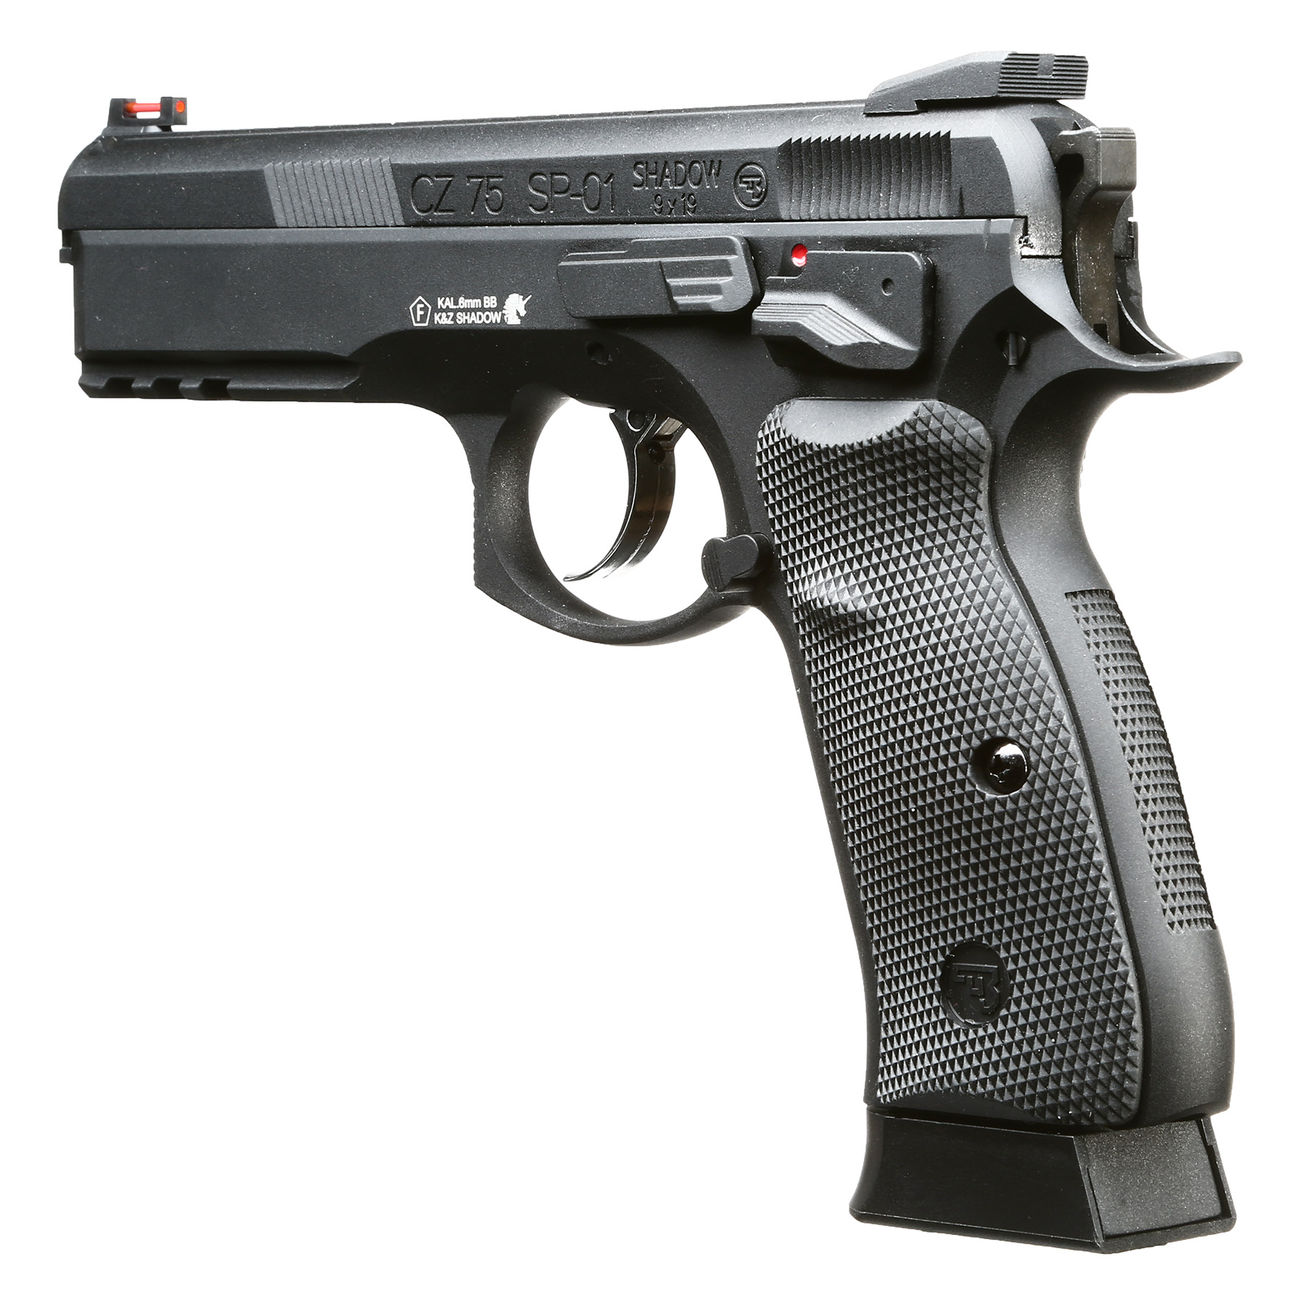 KJ Works CZ 75 SP-01 Shadow Vollmetall GBB 6mm BB schwarz 5